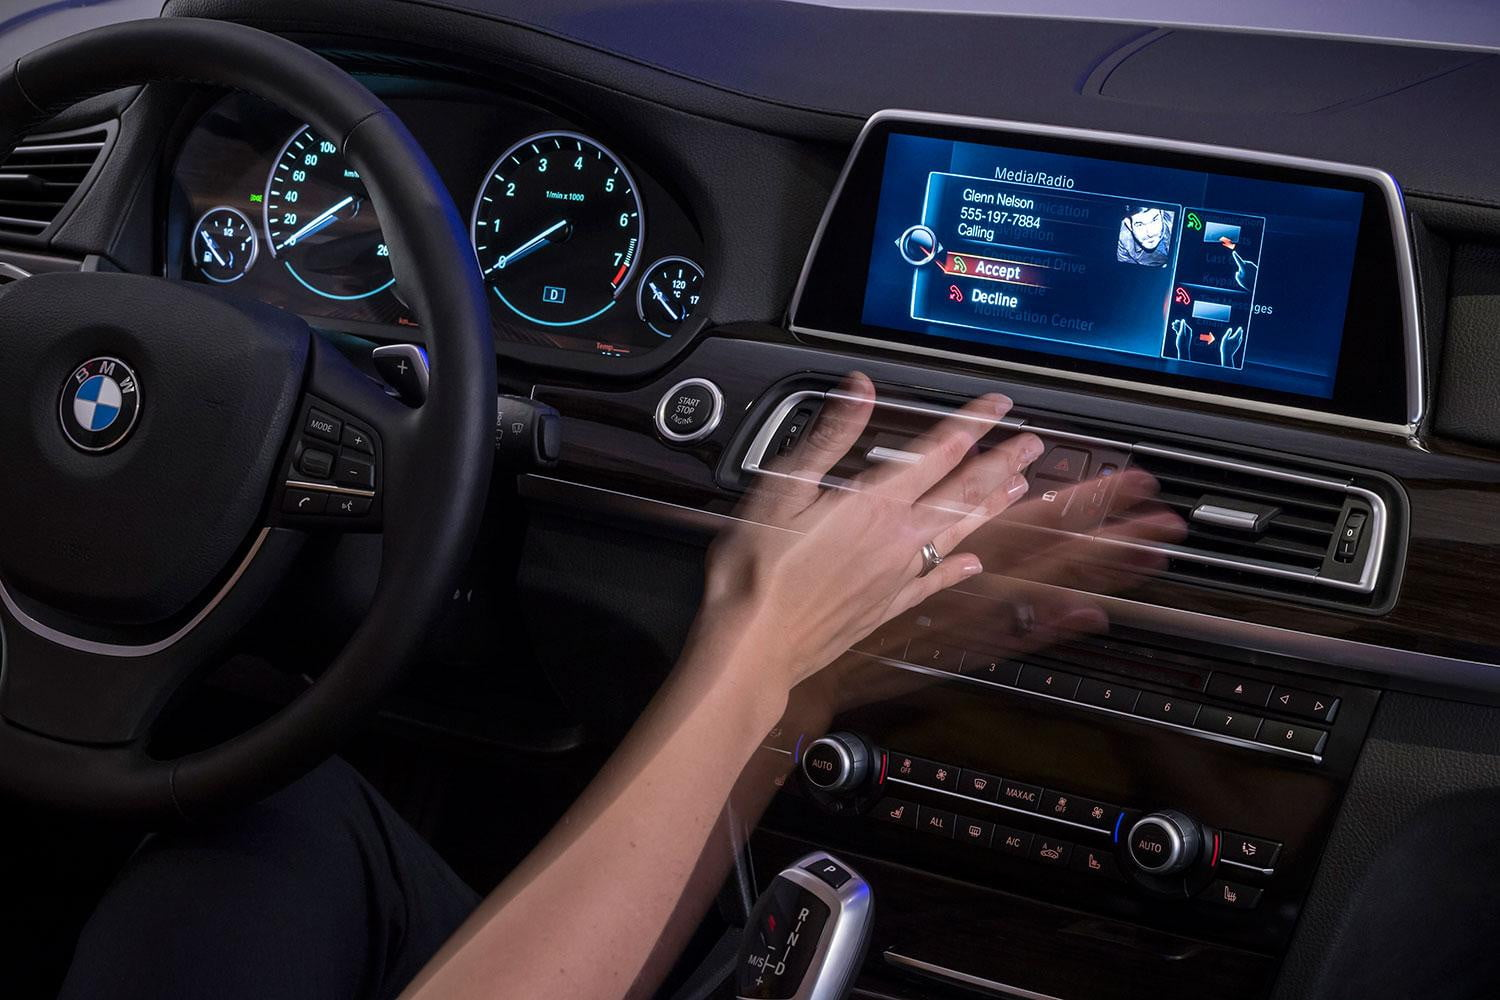 New Bmw Idrive Features Touchscreen And Gesture